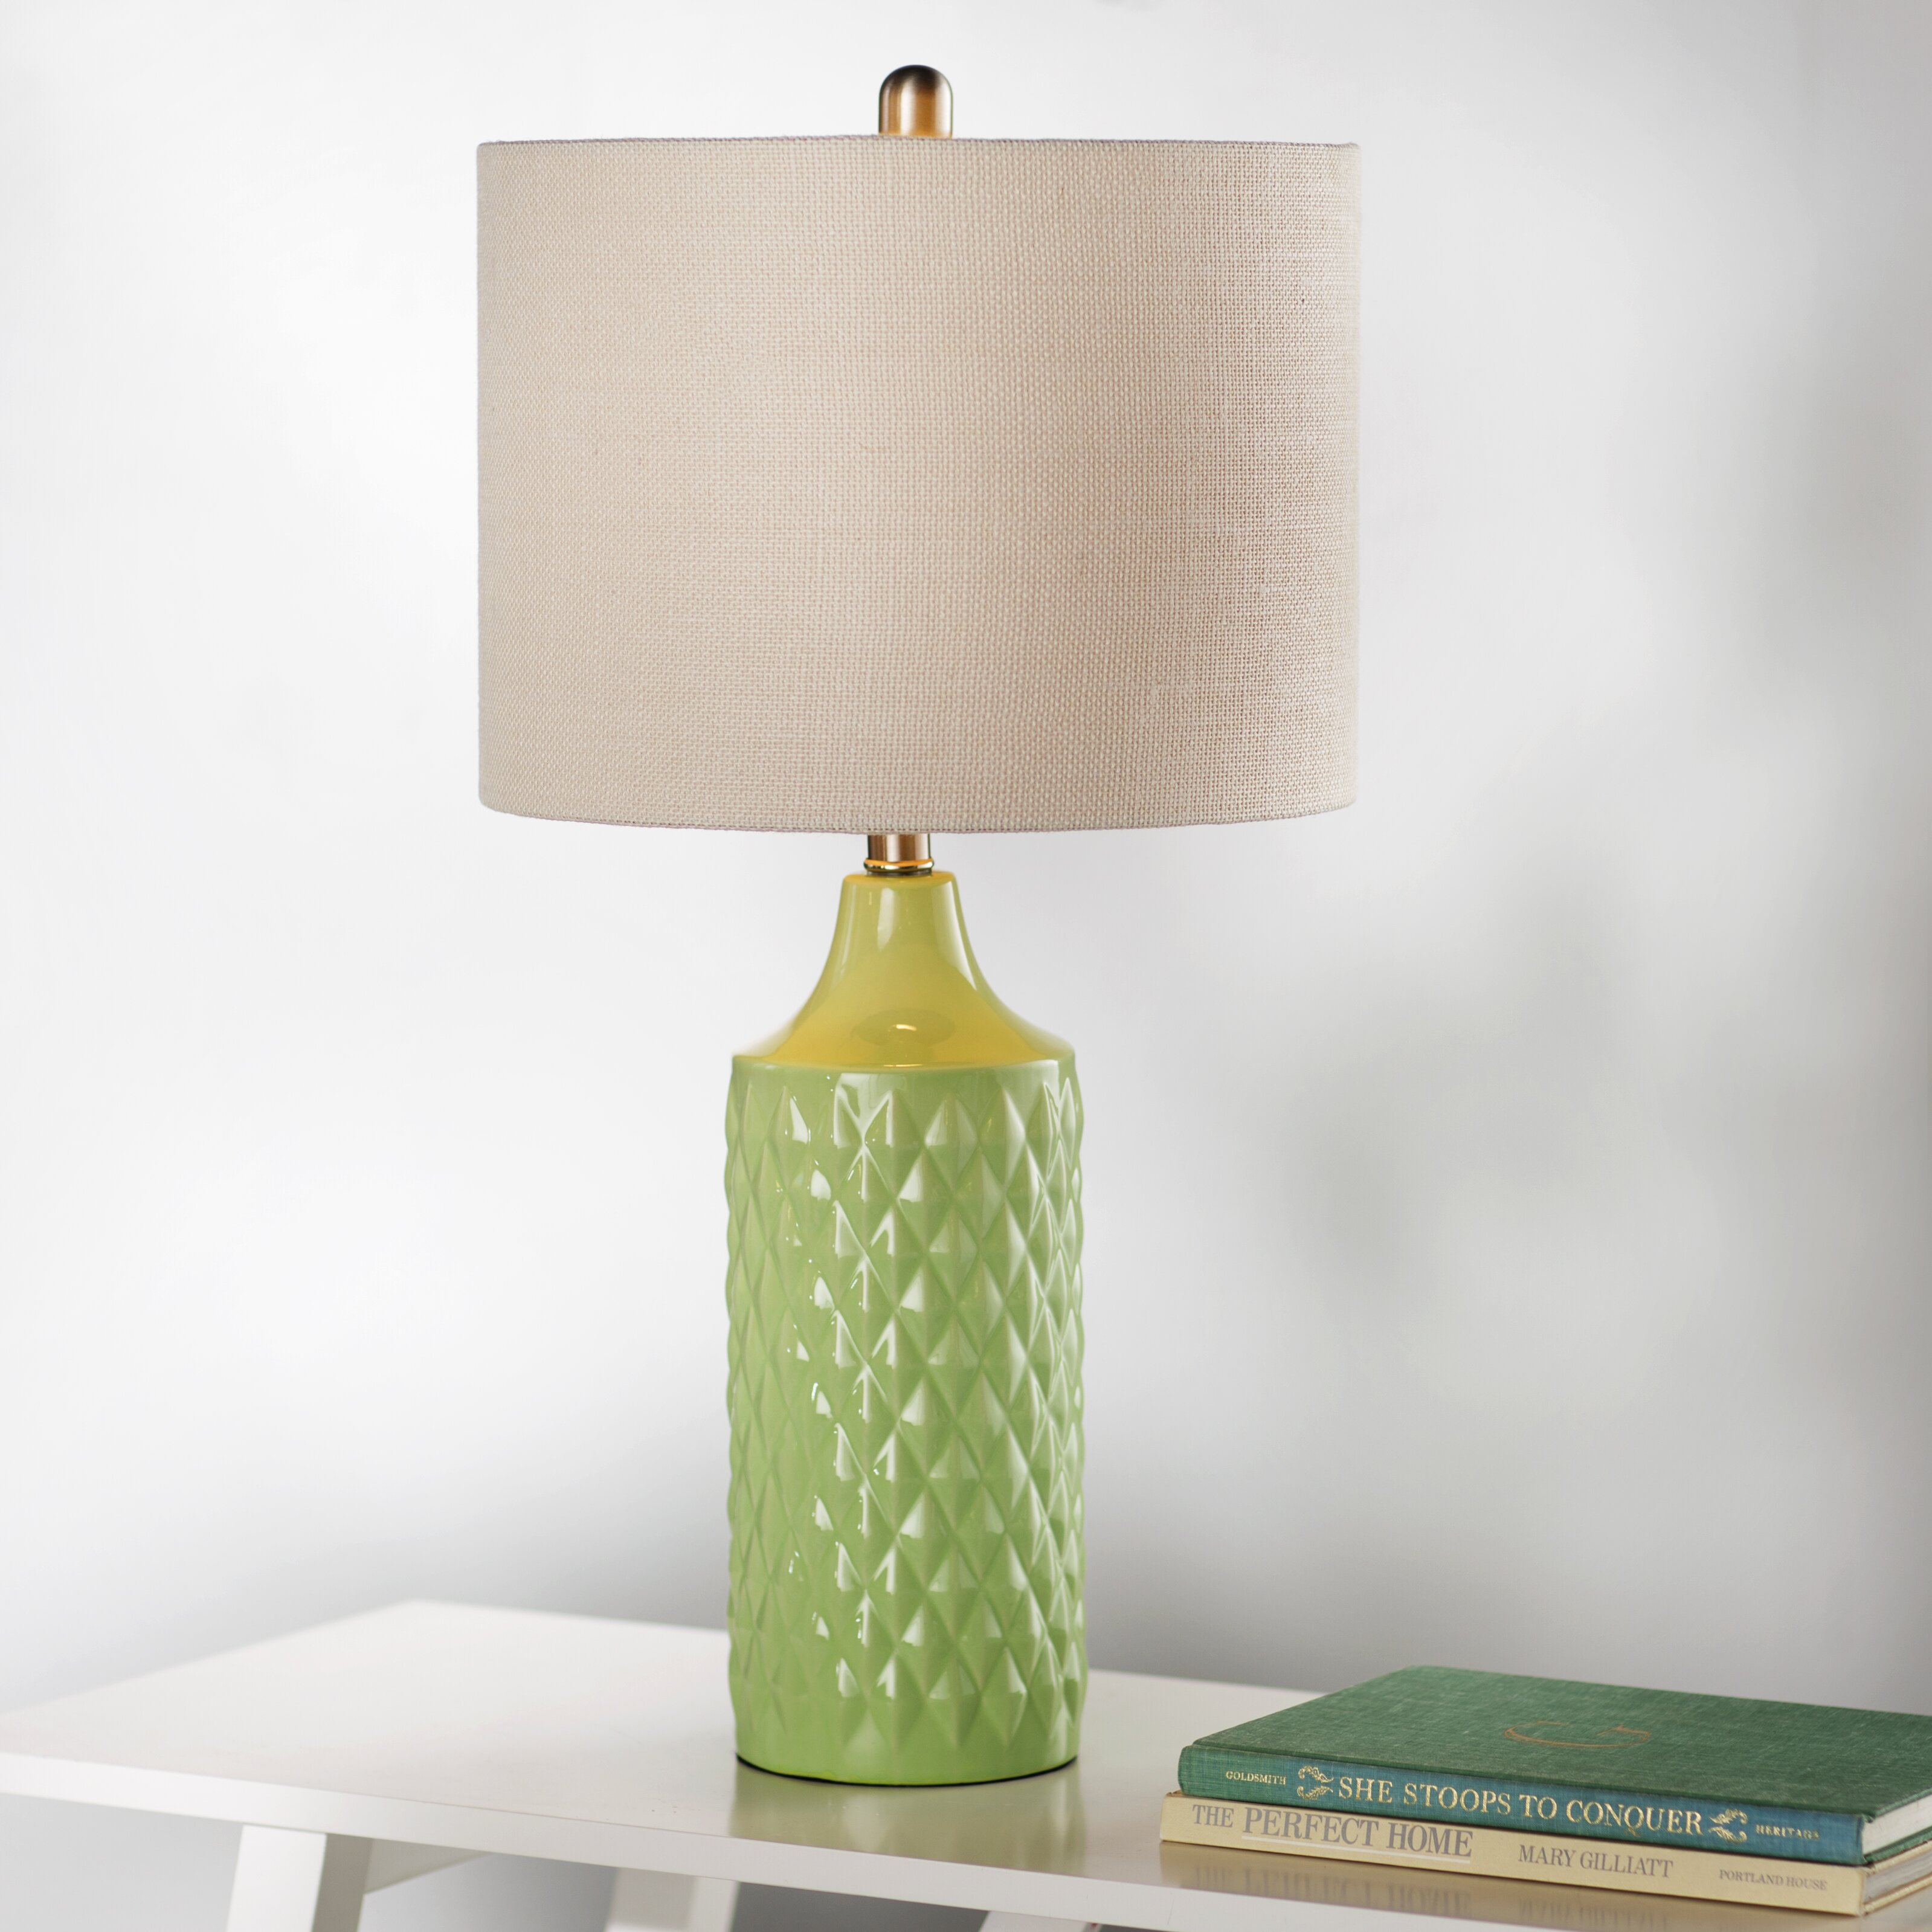 Table lamp shops melbourne best inspiration for table lamp floor and table lamps melbourne victoria desk lamps geotapseo Image collections